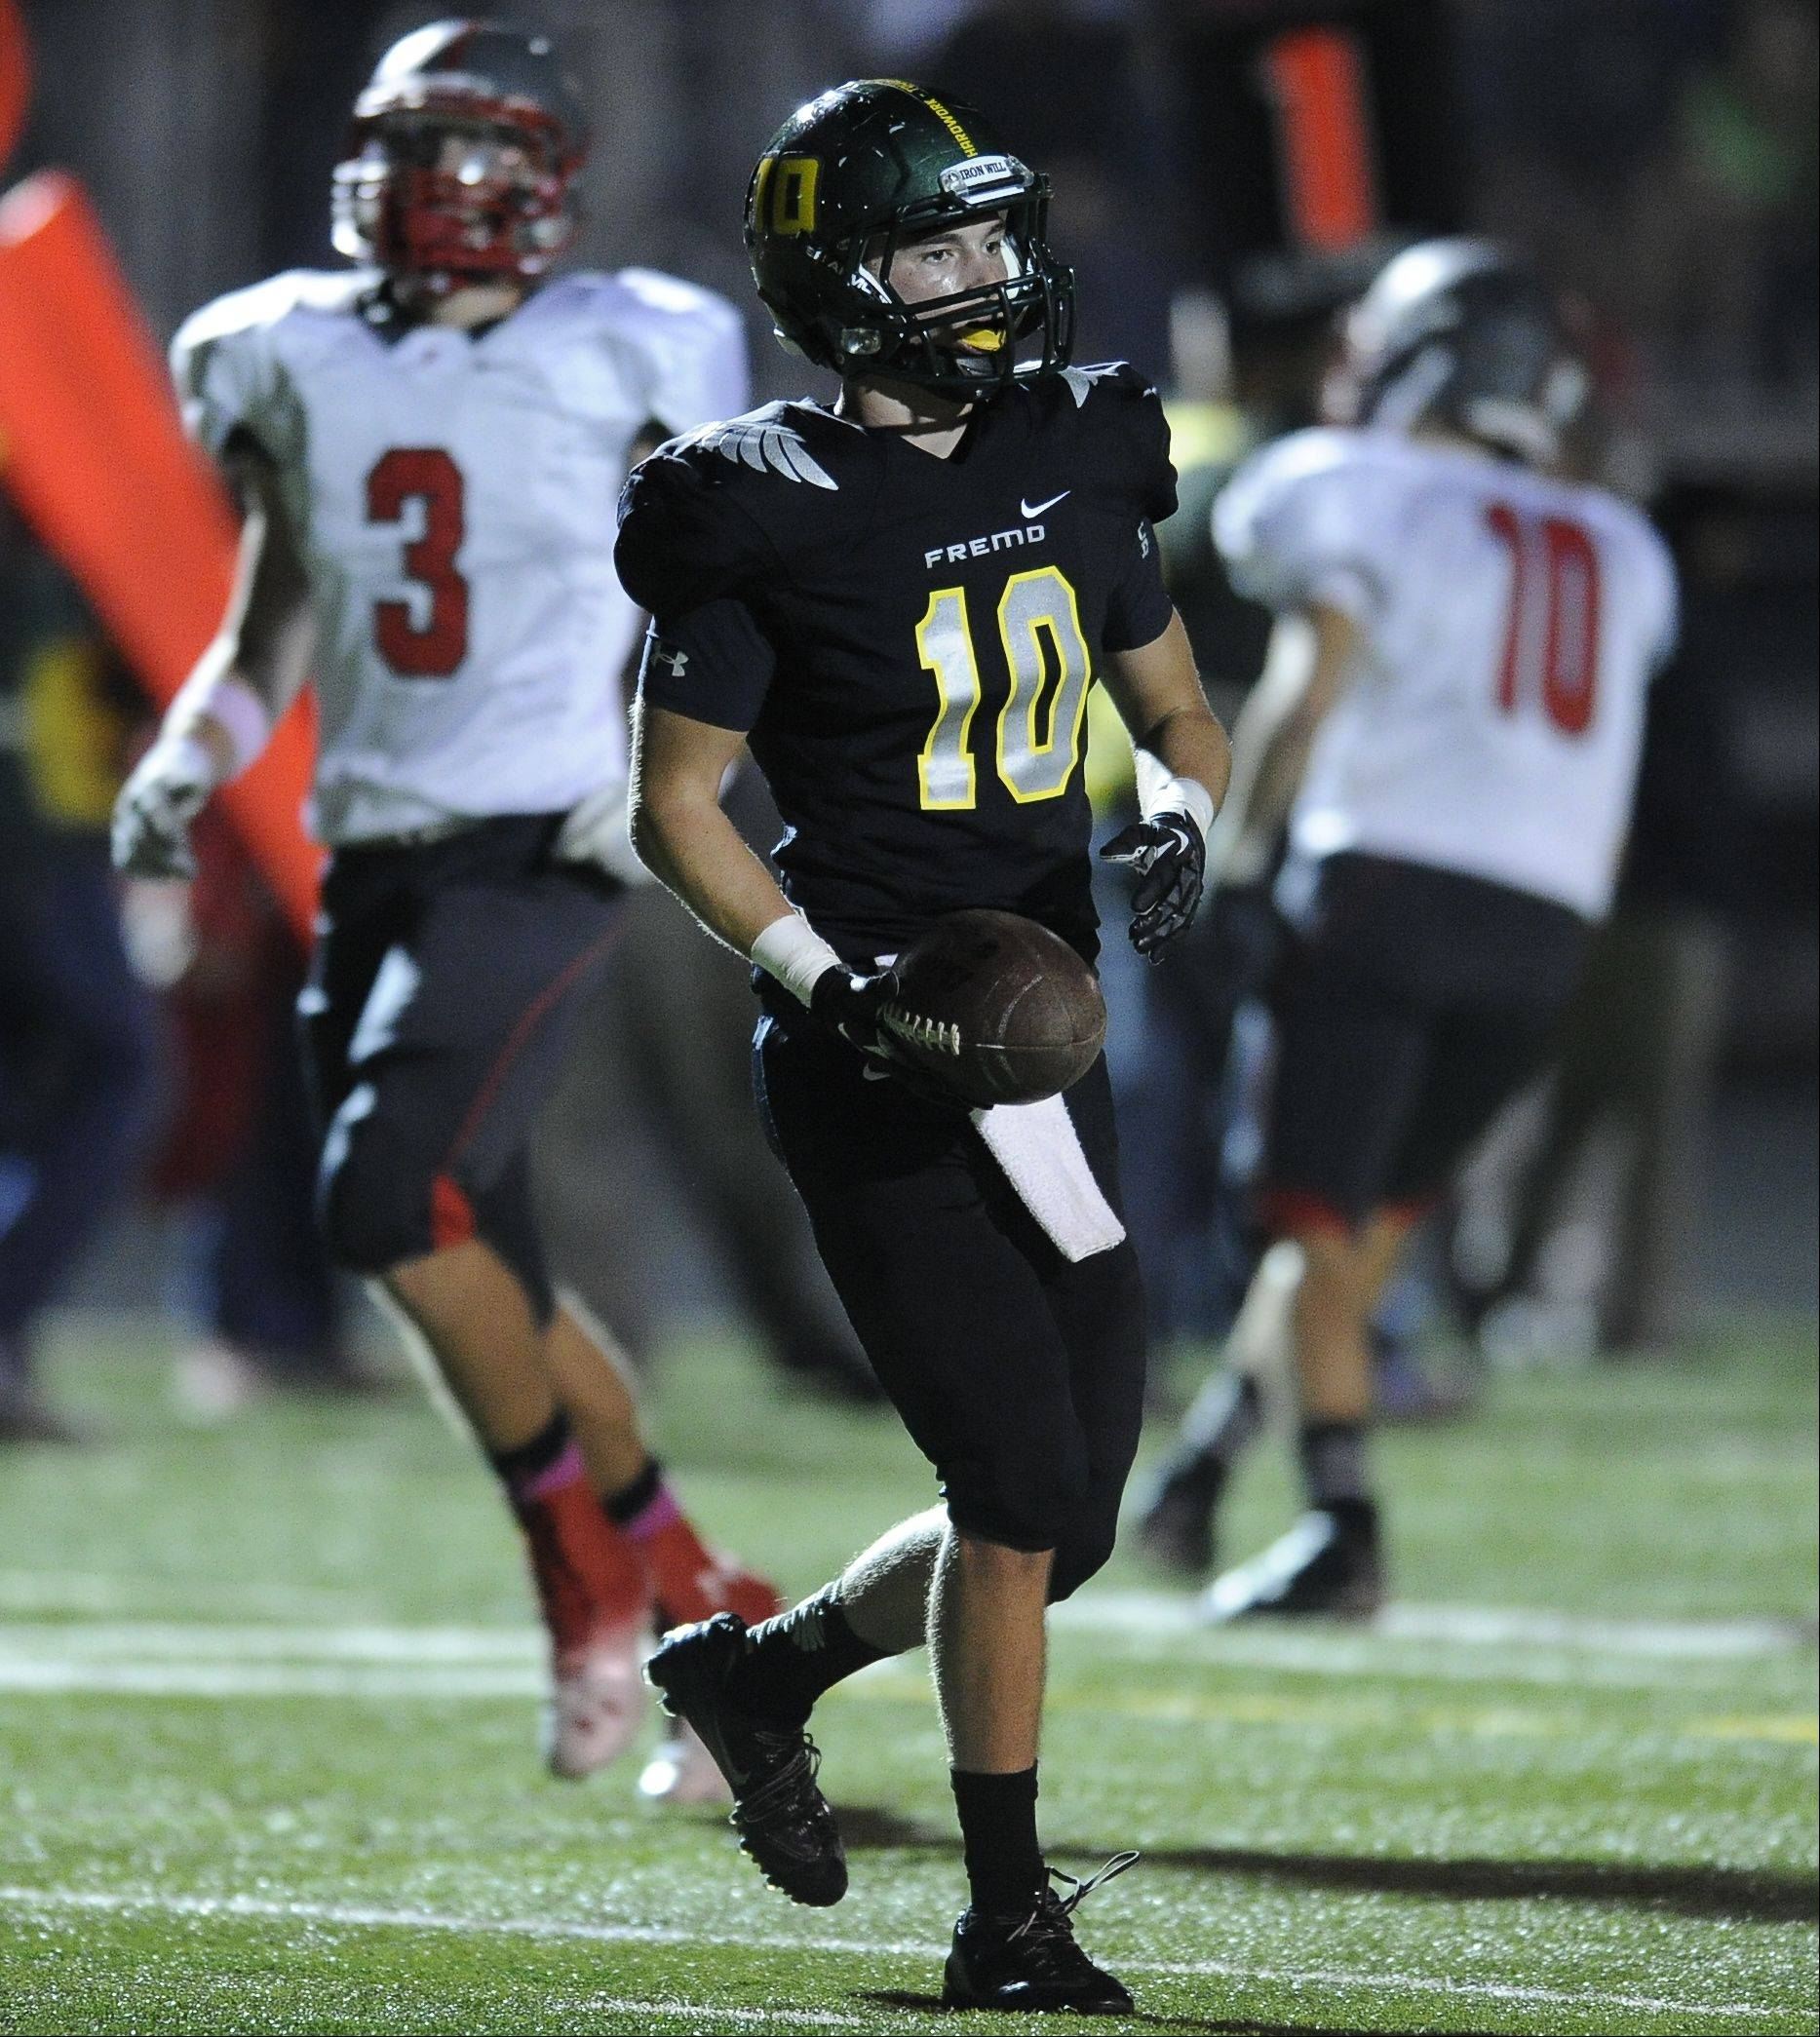 Week -7- Photos from the Palatine vs Fremd football game on Friday, October 11 at Fremd High School.